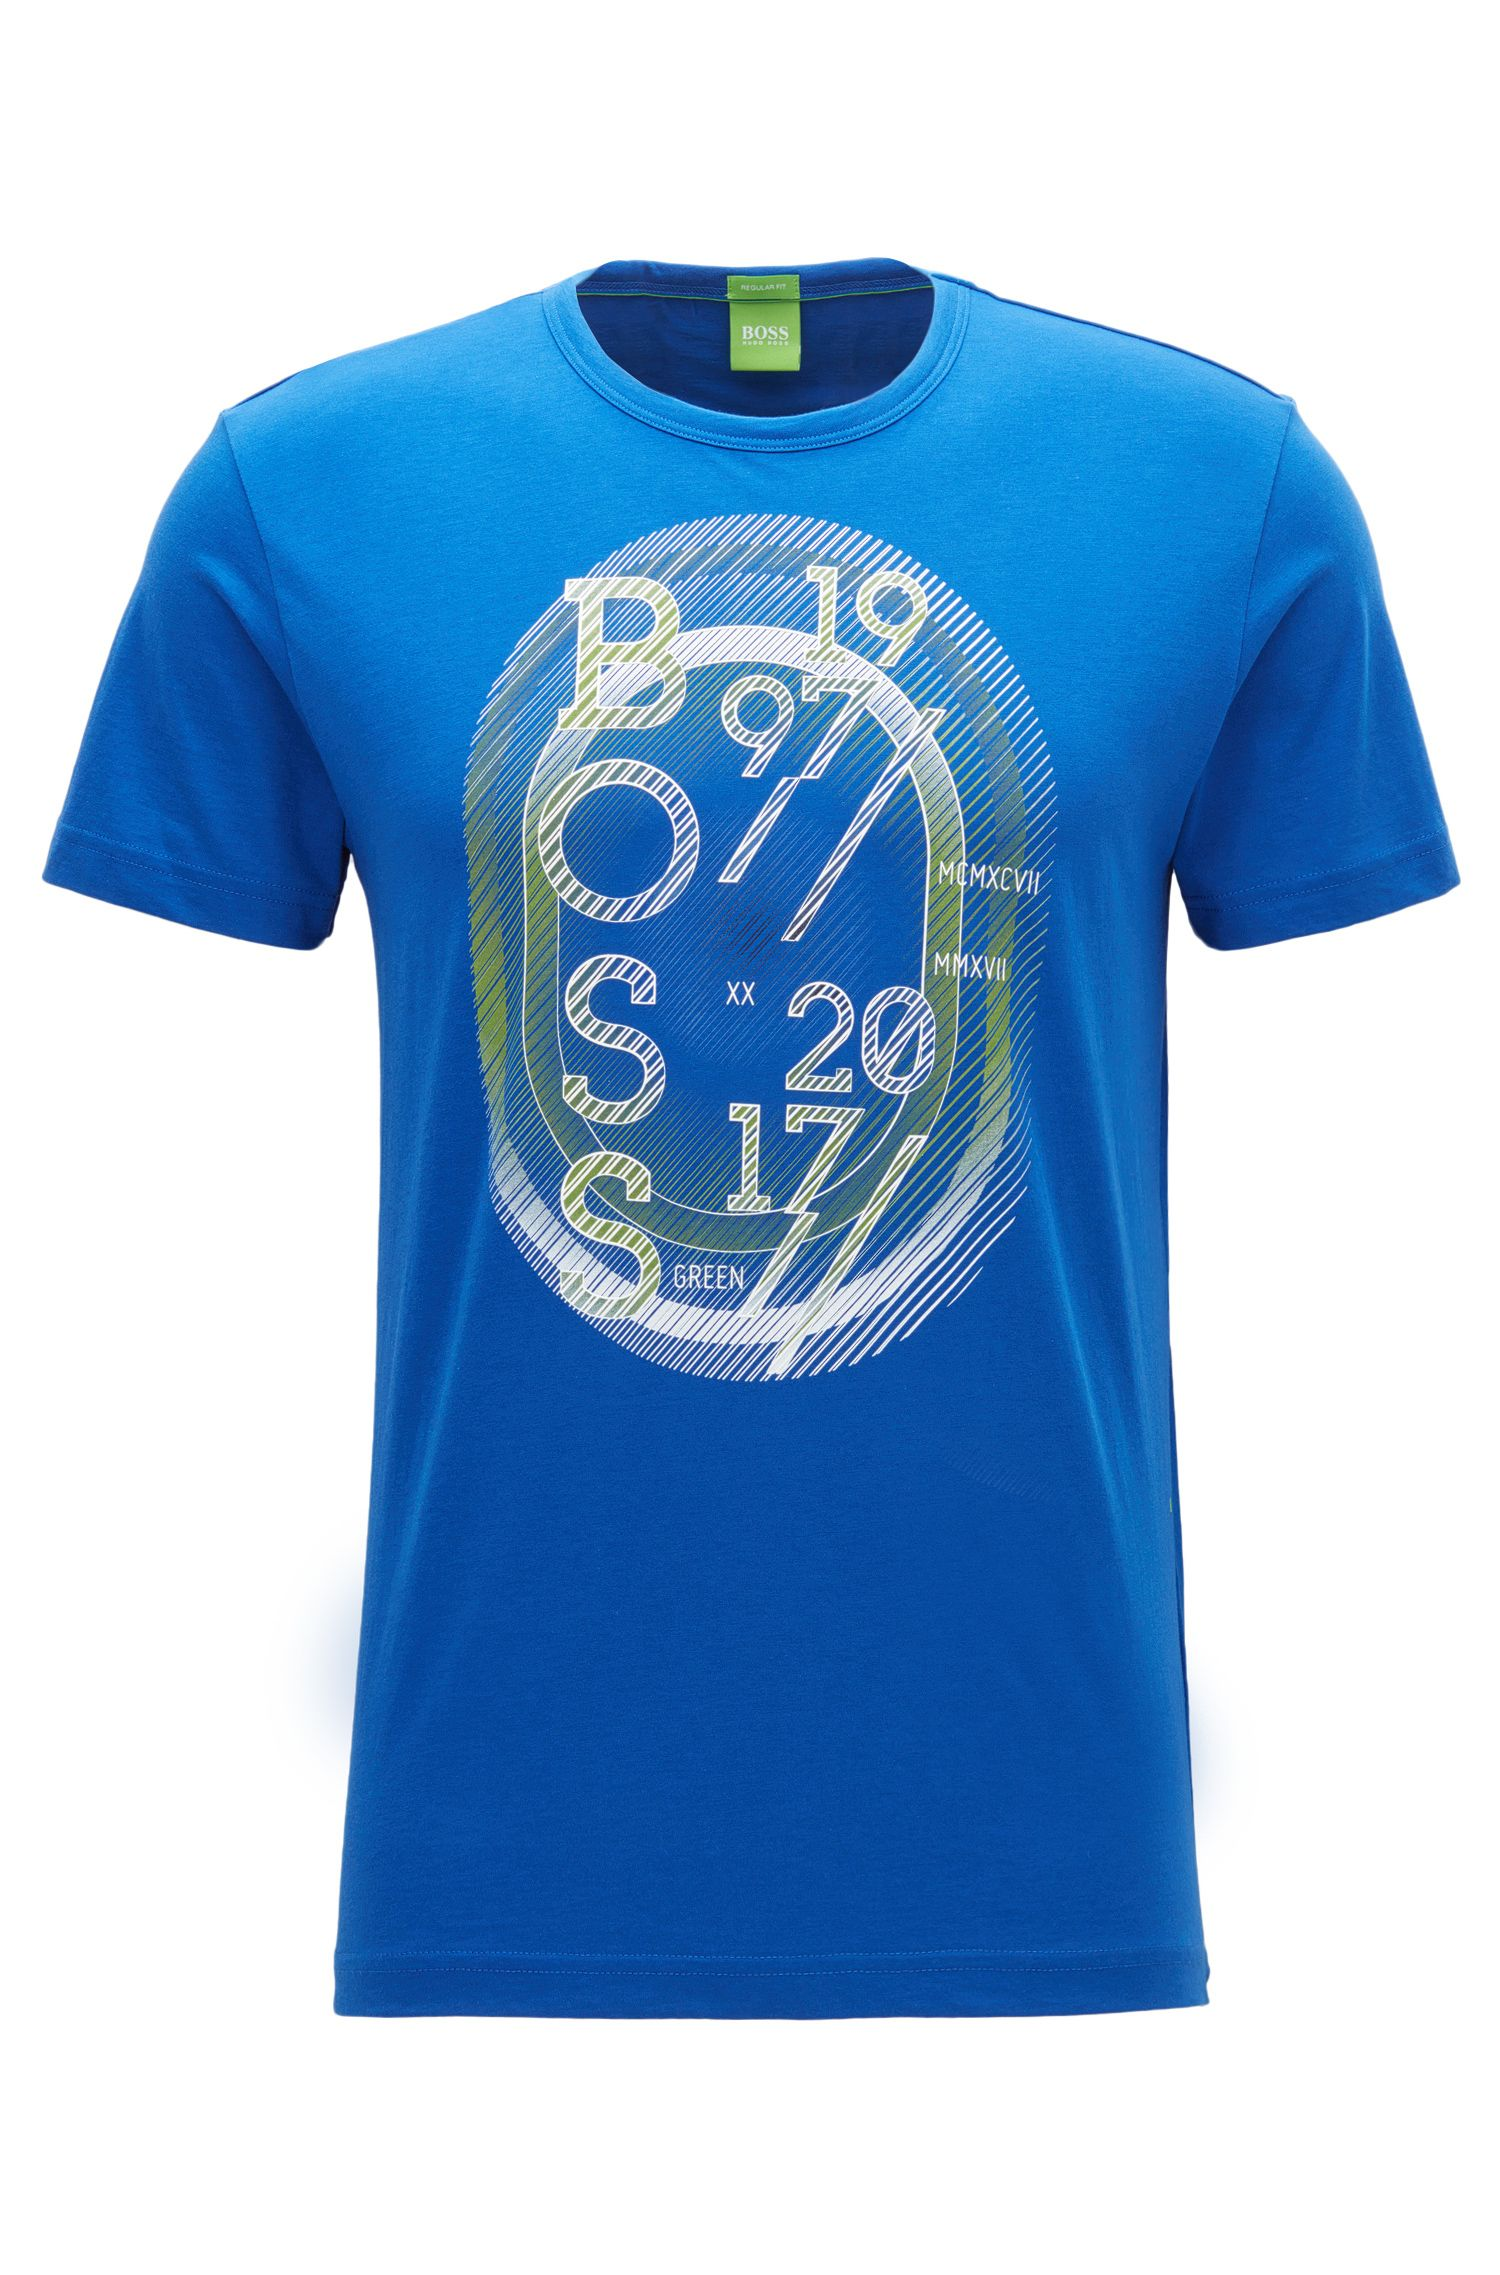 Stretch Cotton Graphic T-Shirt | Tee, Blue